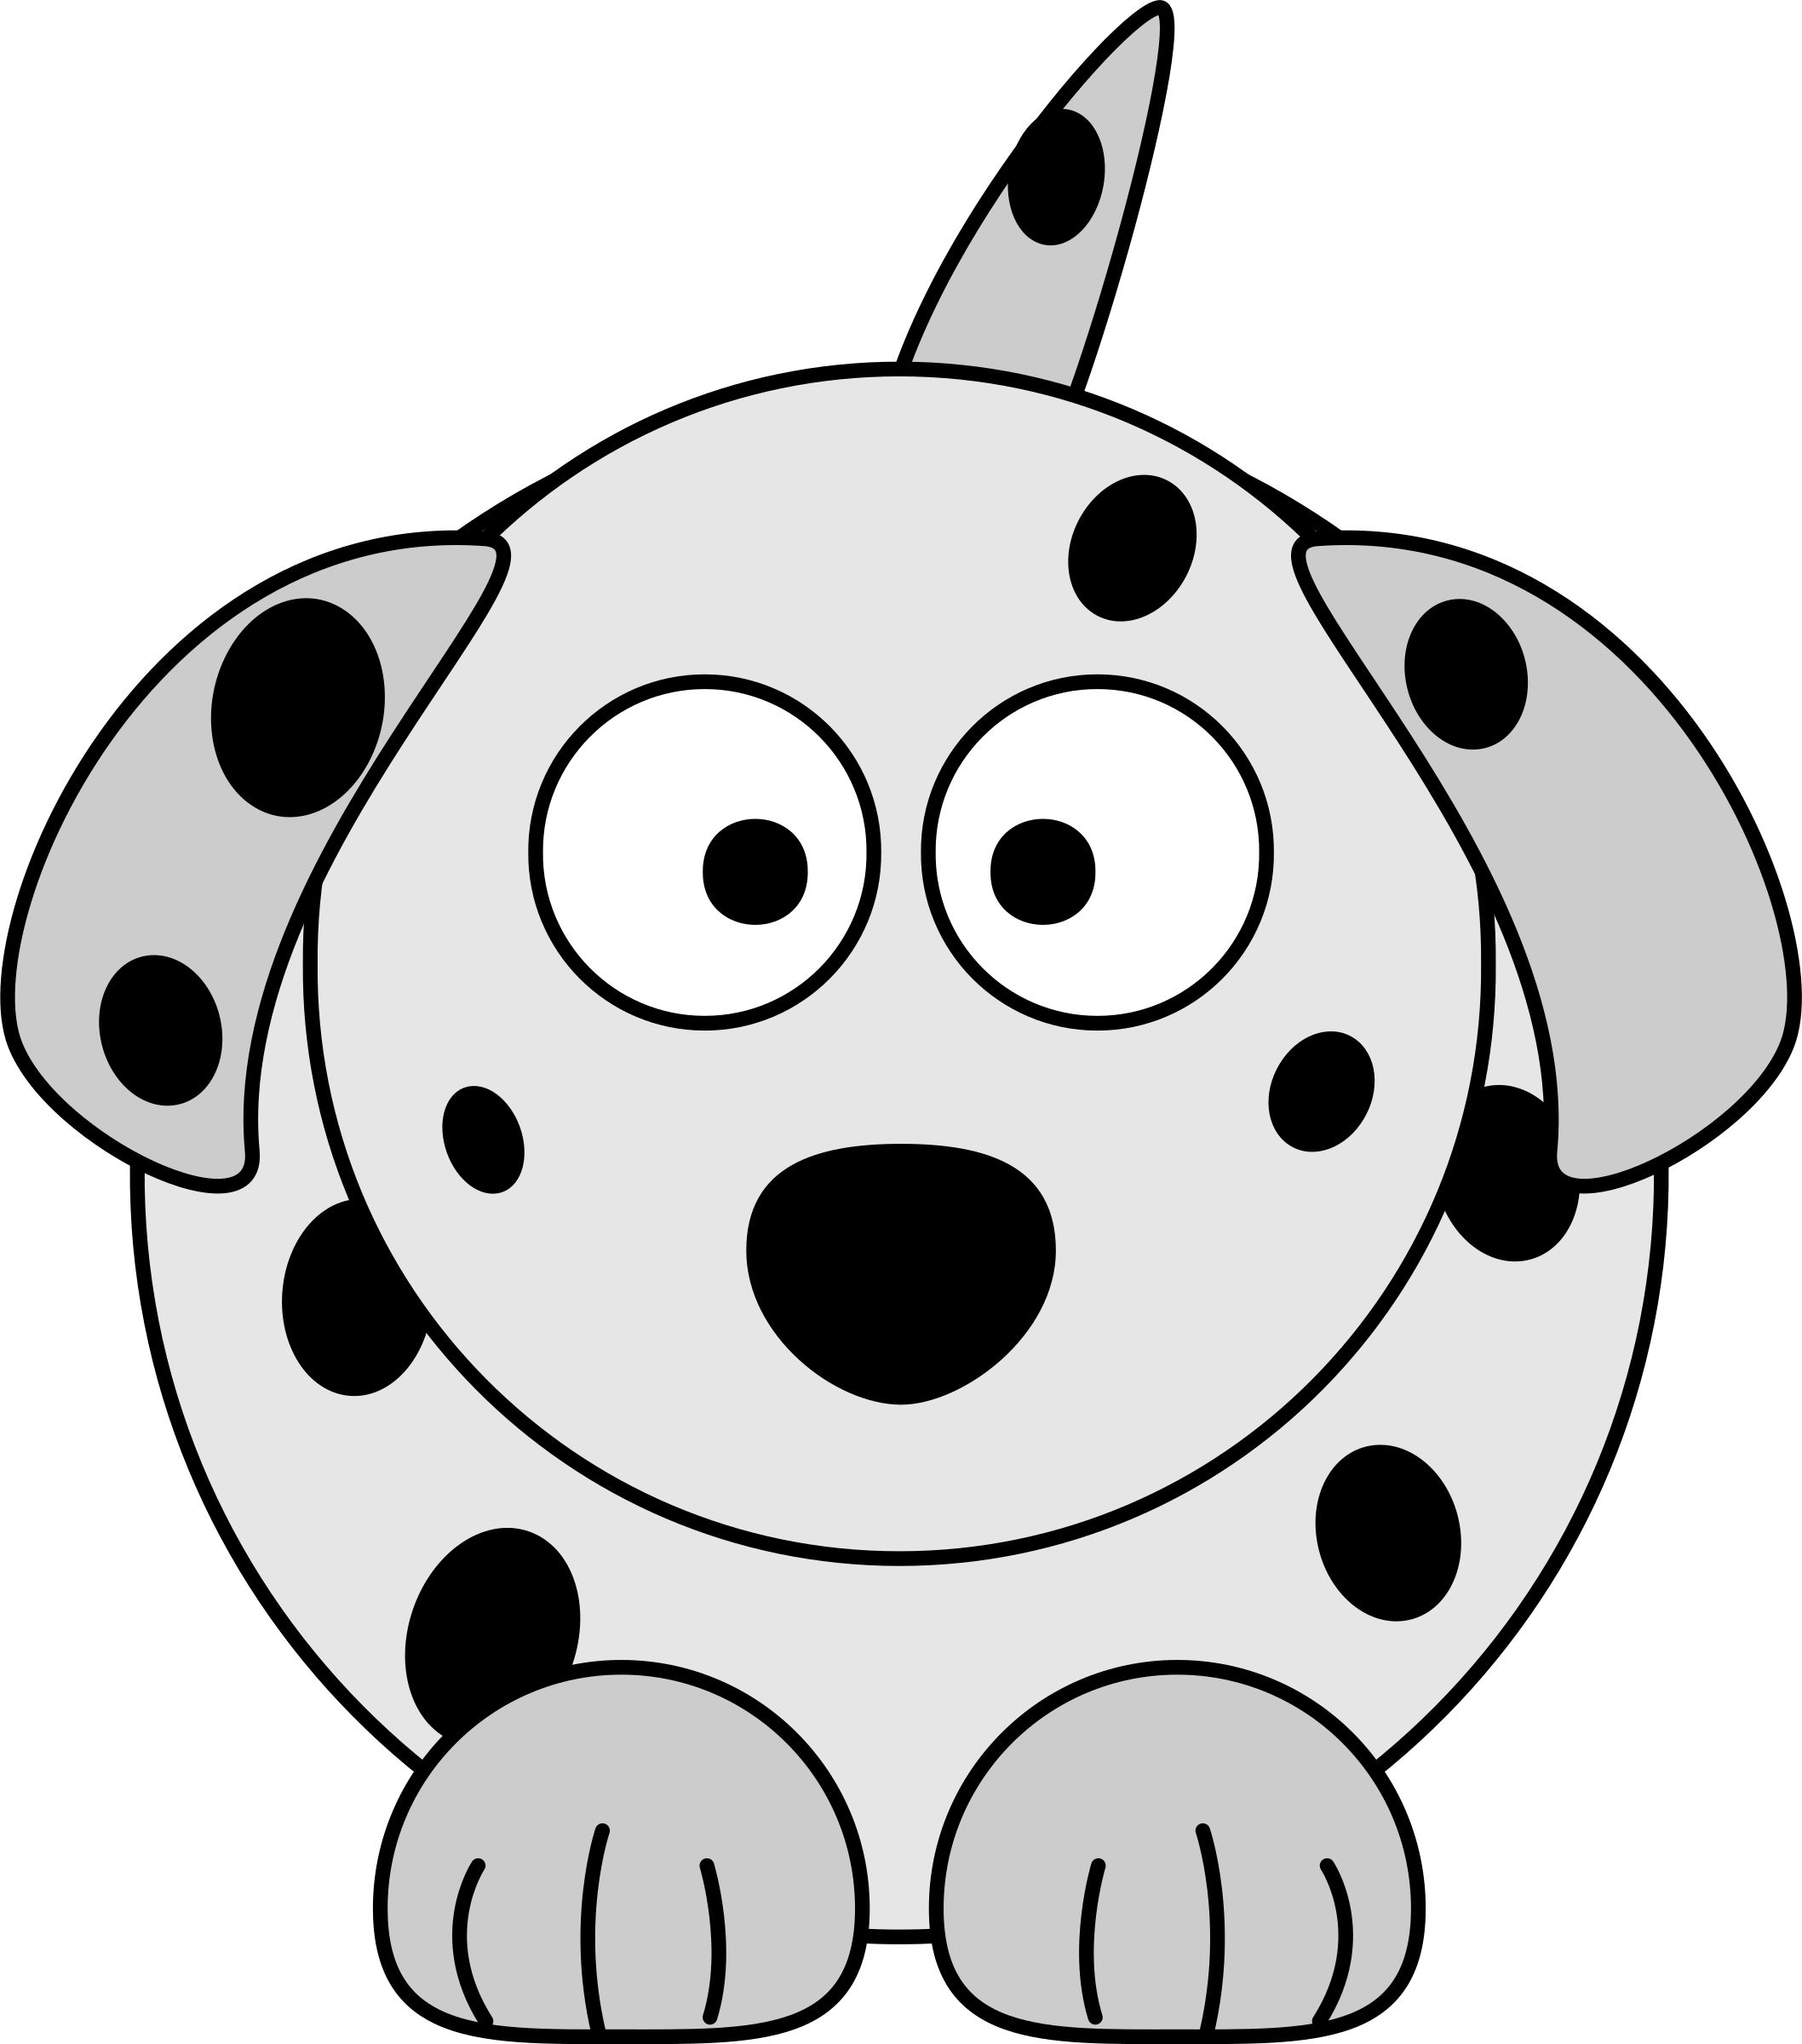 png black and white download Cartoon dog big image. Dalmatian clipart